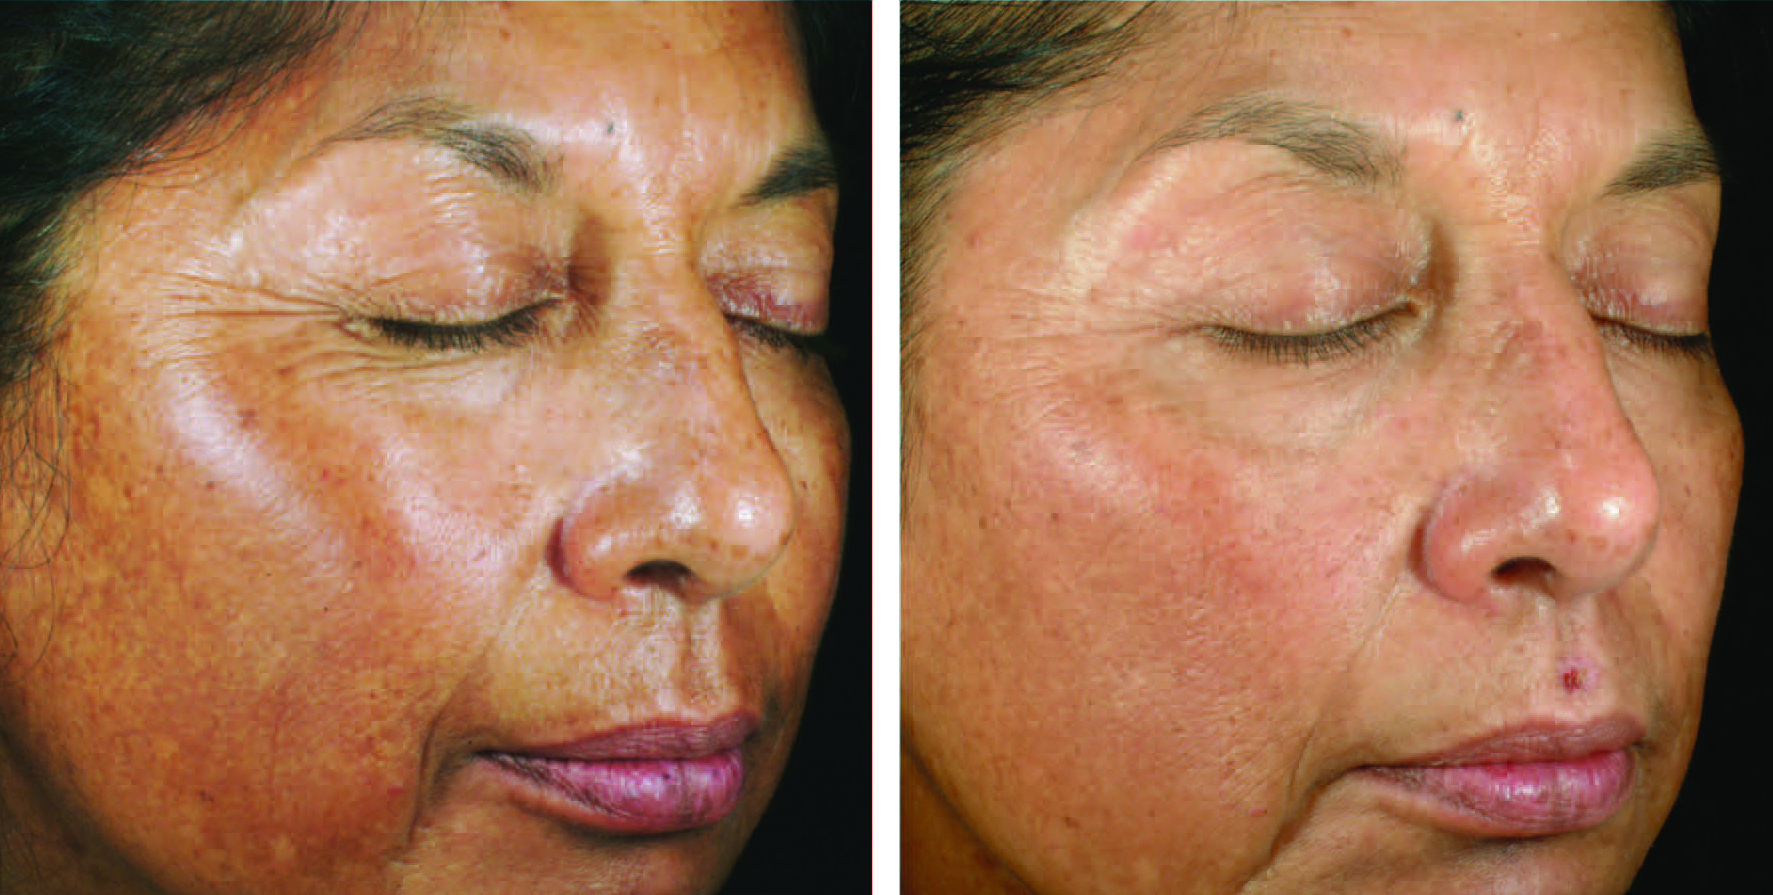 Before and after of Skin Medica chemical peel in Milwaukee, WI at Medspa